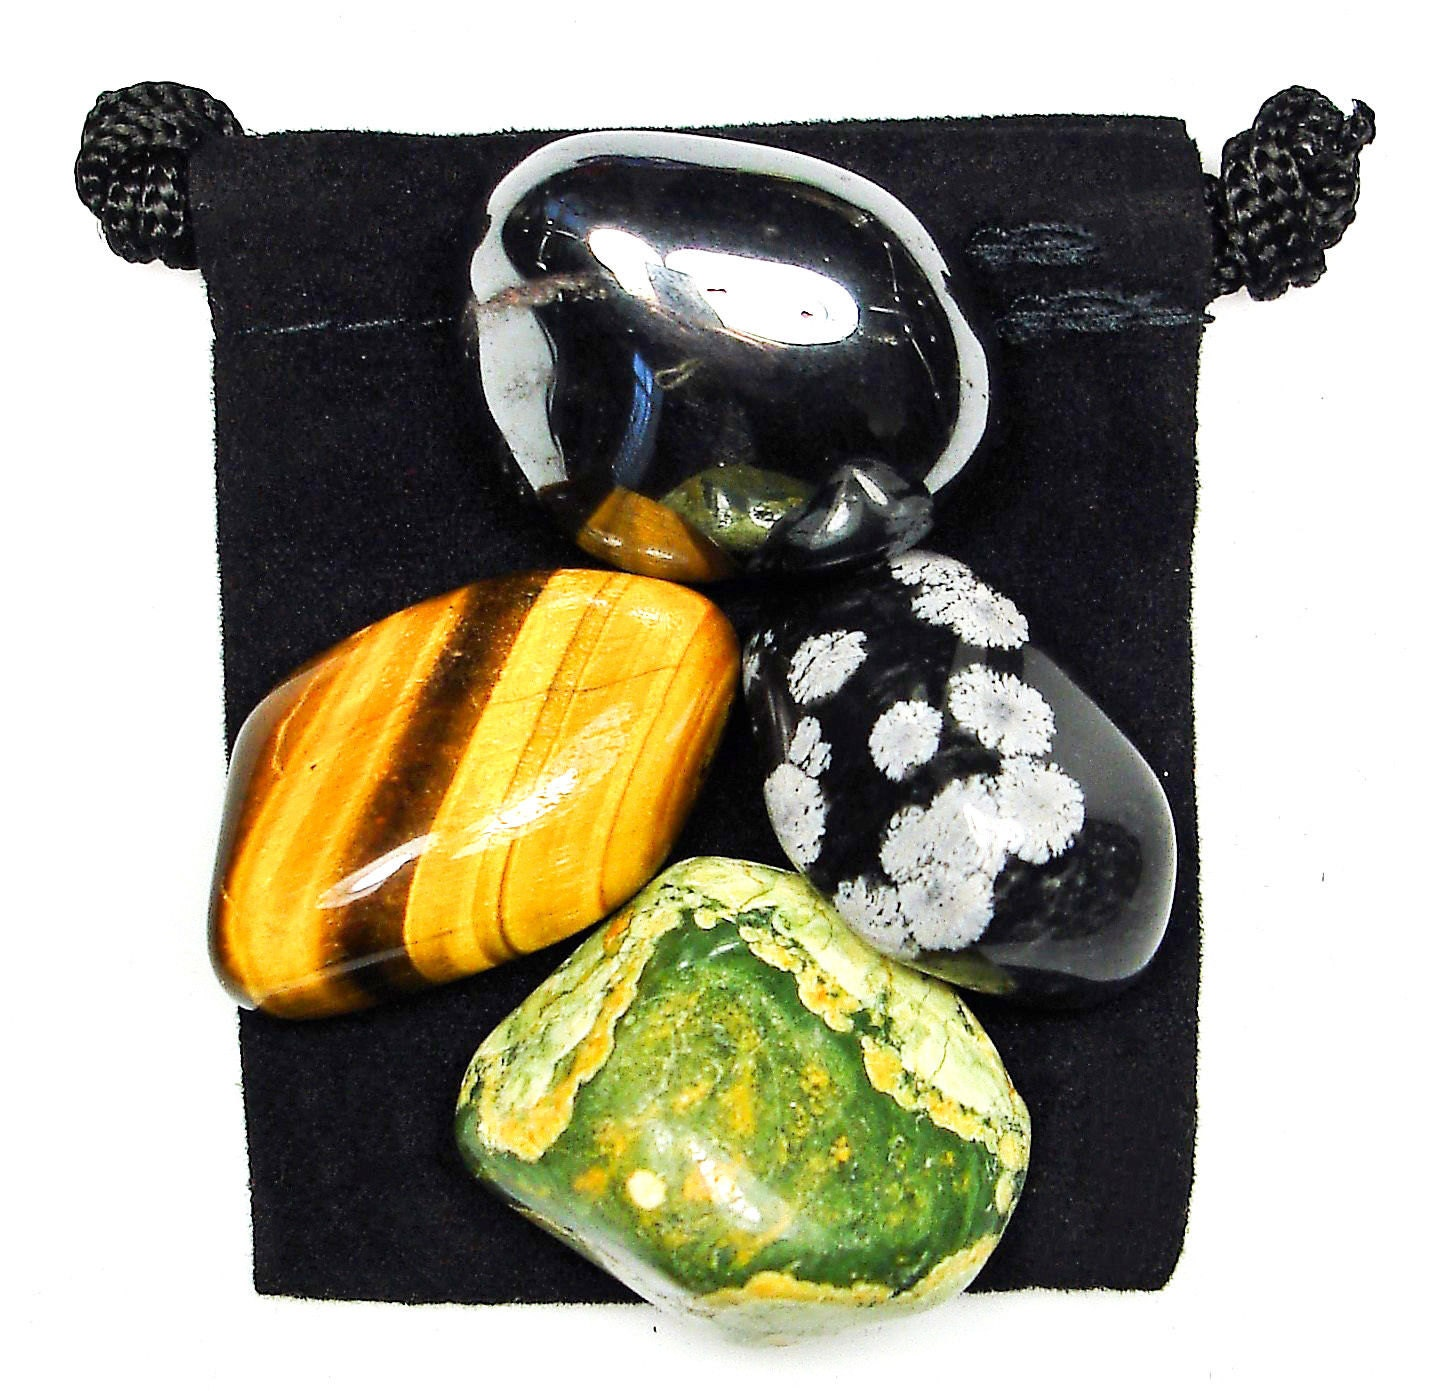 PROBLEM RESOLUTION Tumbled Crystal Healing Set - 4 Gemstones w/Description  & Pouch - Hematite, Rhyolite, Snowflake Obsidian, and Tiger's Eye